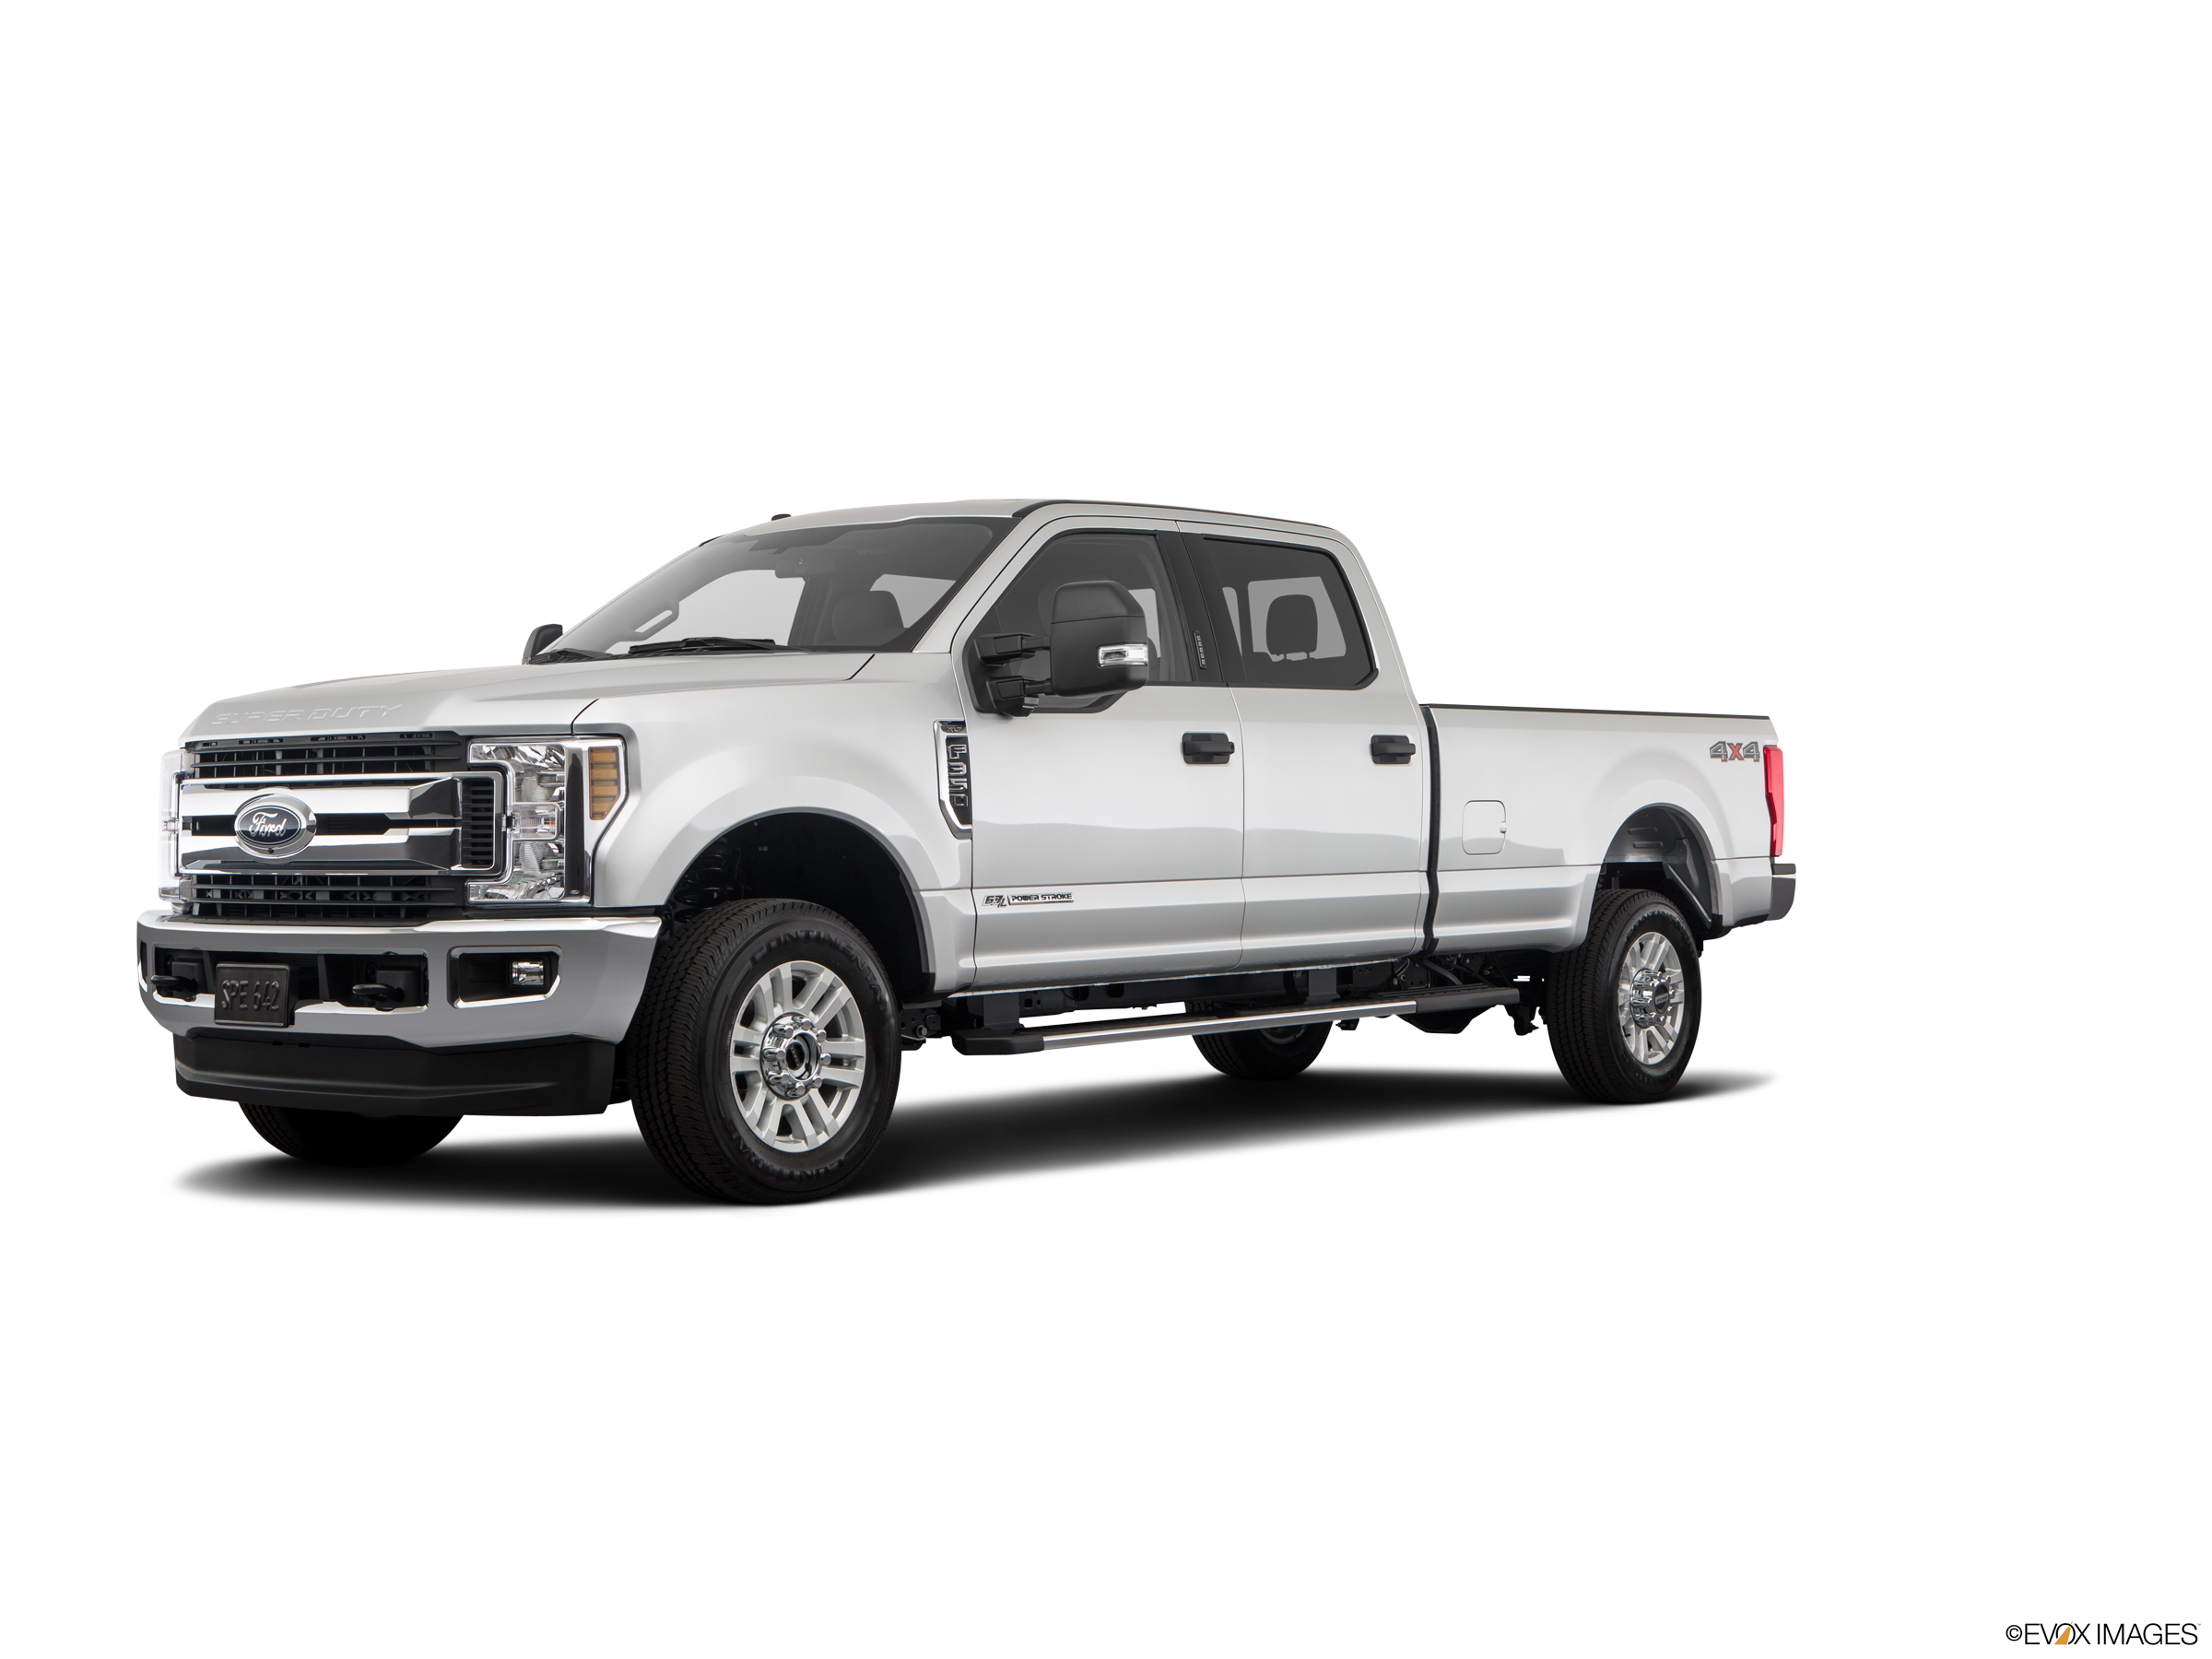 2019 ford f350 super duty crew cab pricing, ratings, expert review